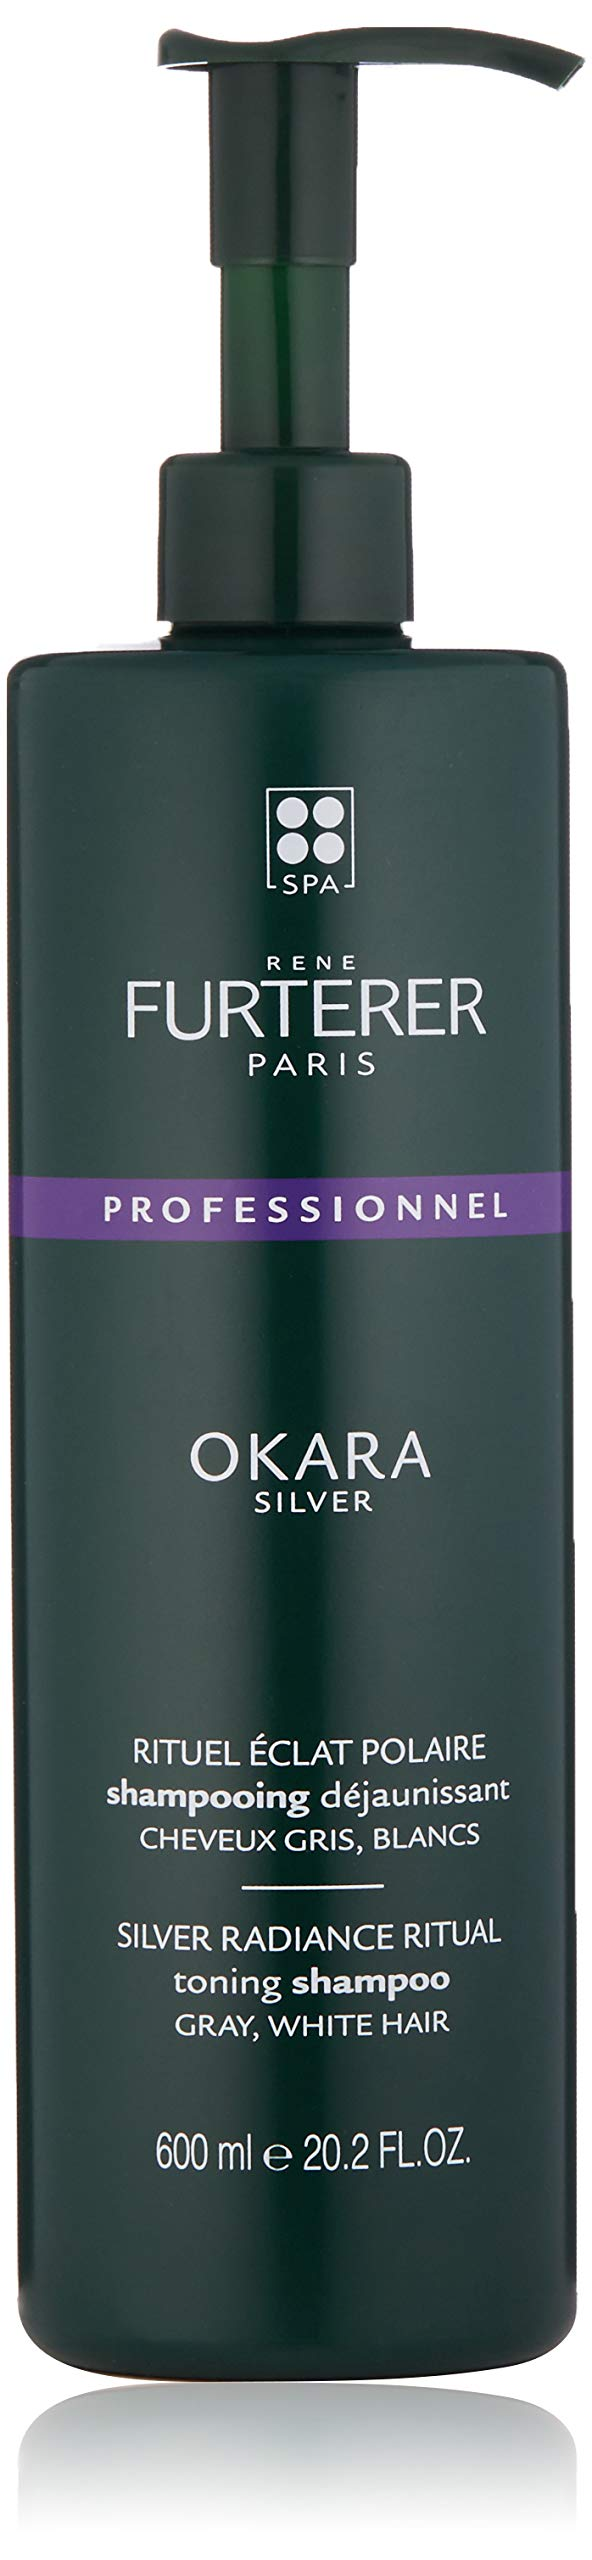 Rene Furterer Okara Silver Toning Shampoo for Gray, White Hair, 20.2 Fl. Oz. by Rene Furterer